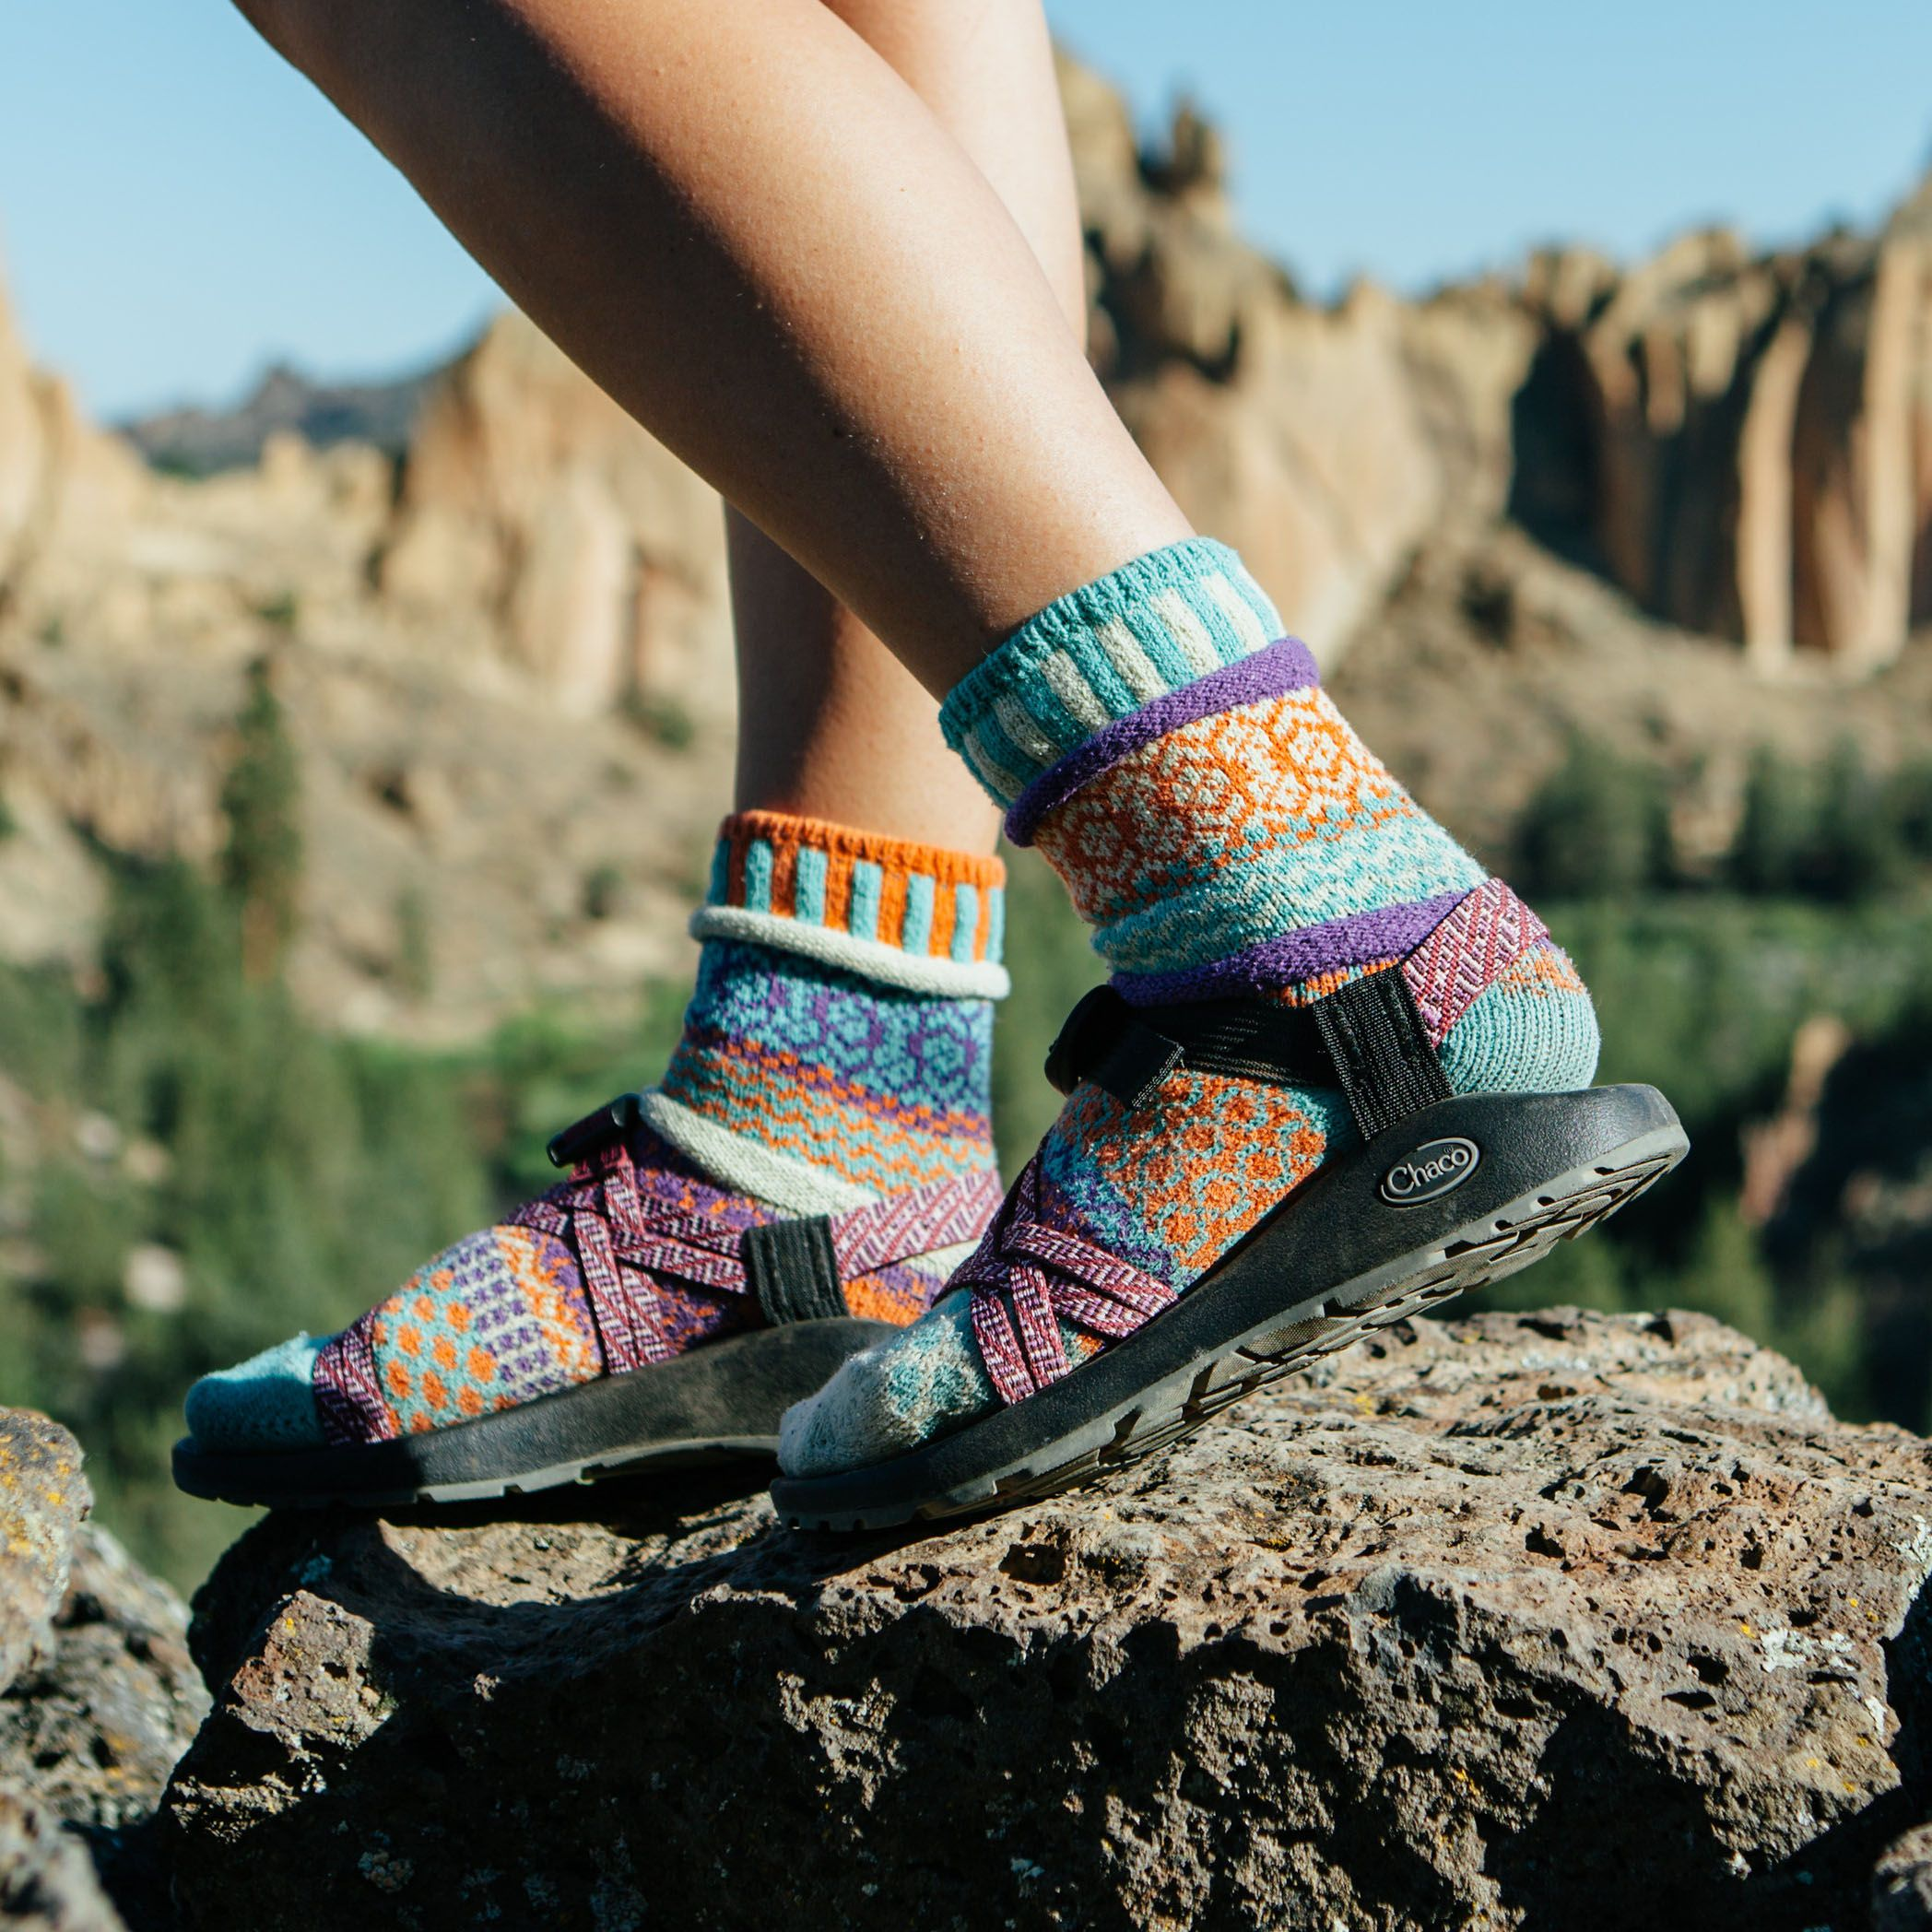 b410b7c9f8b6 Sandals by Chaco. Socks by Solmate Socks.